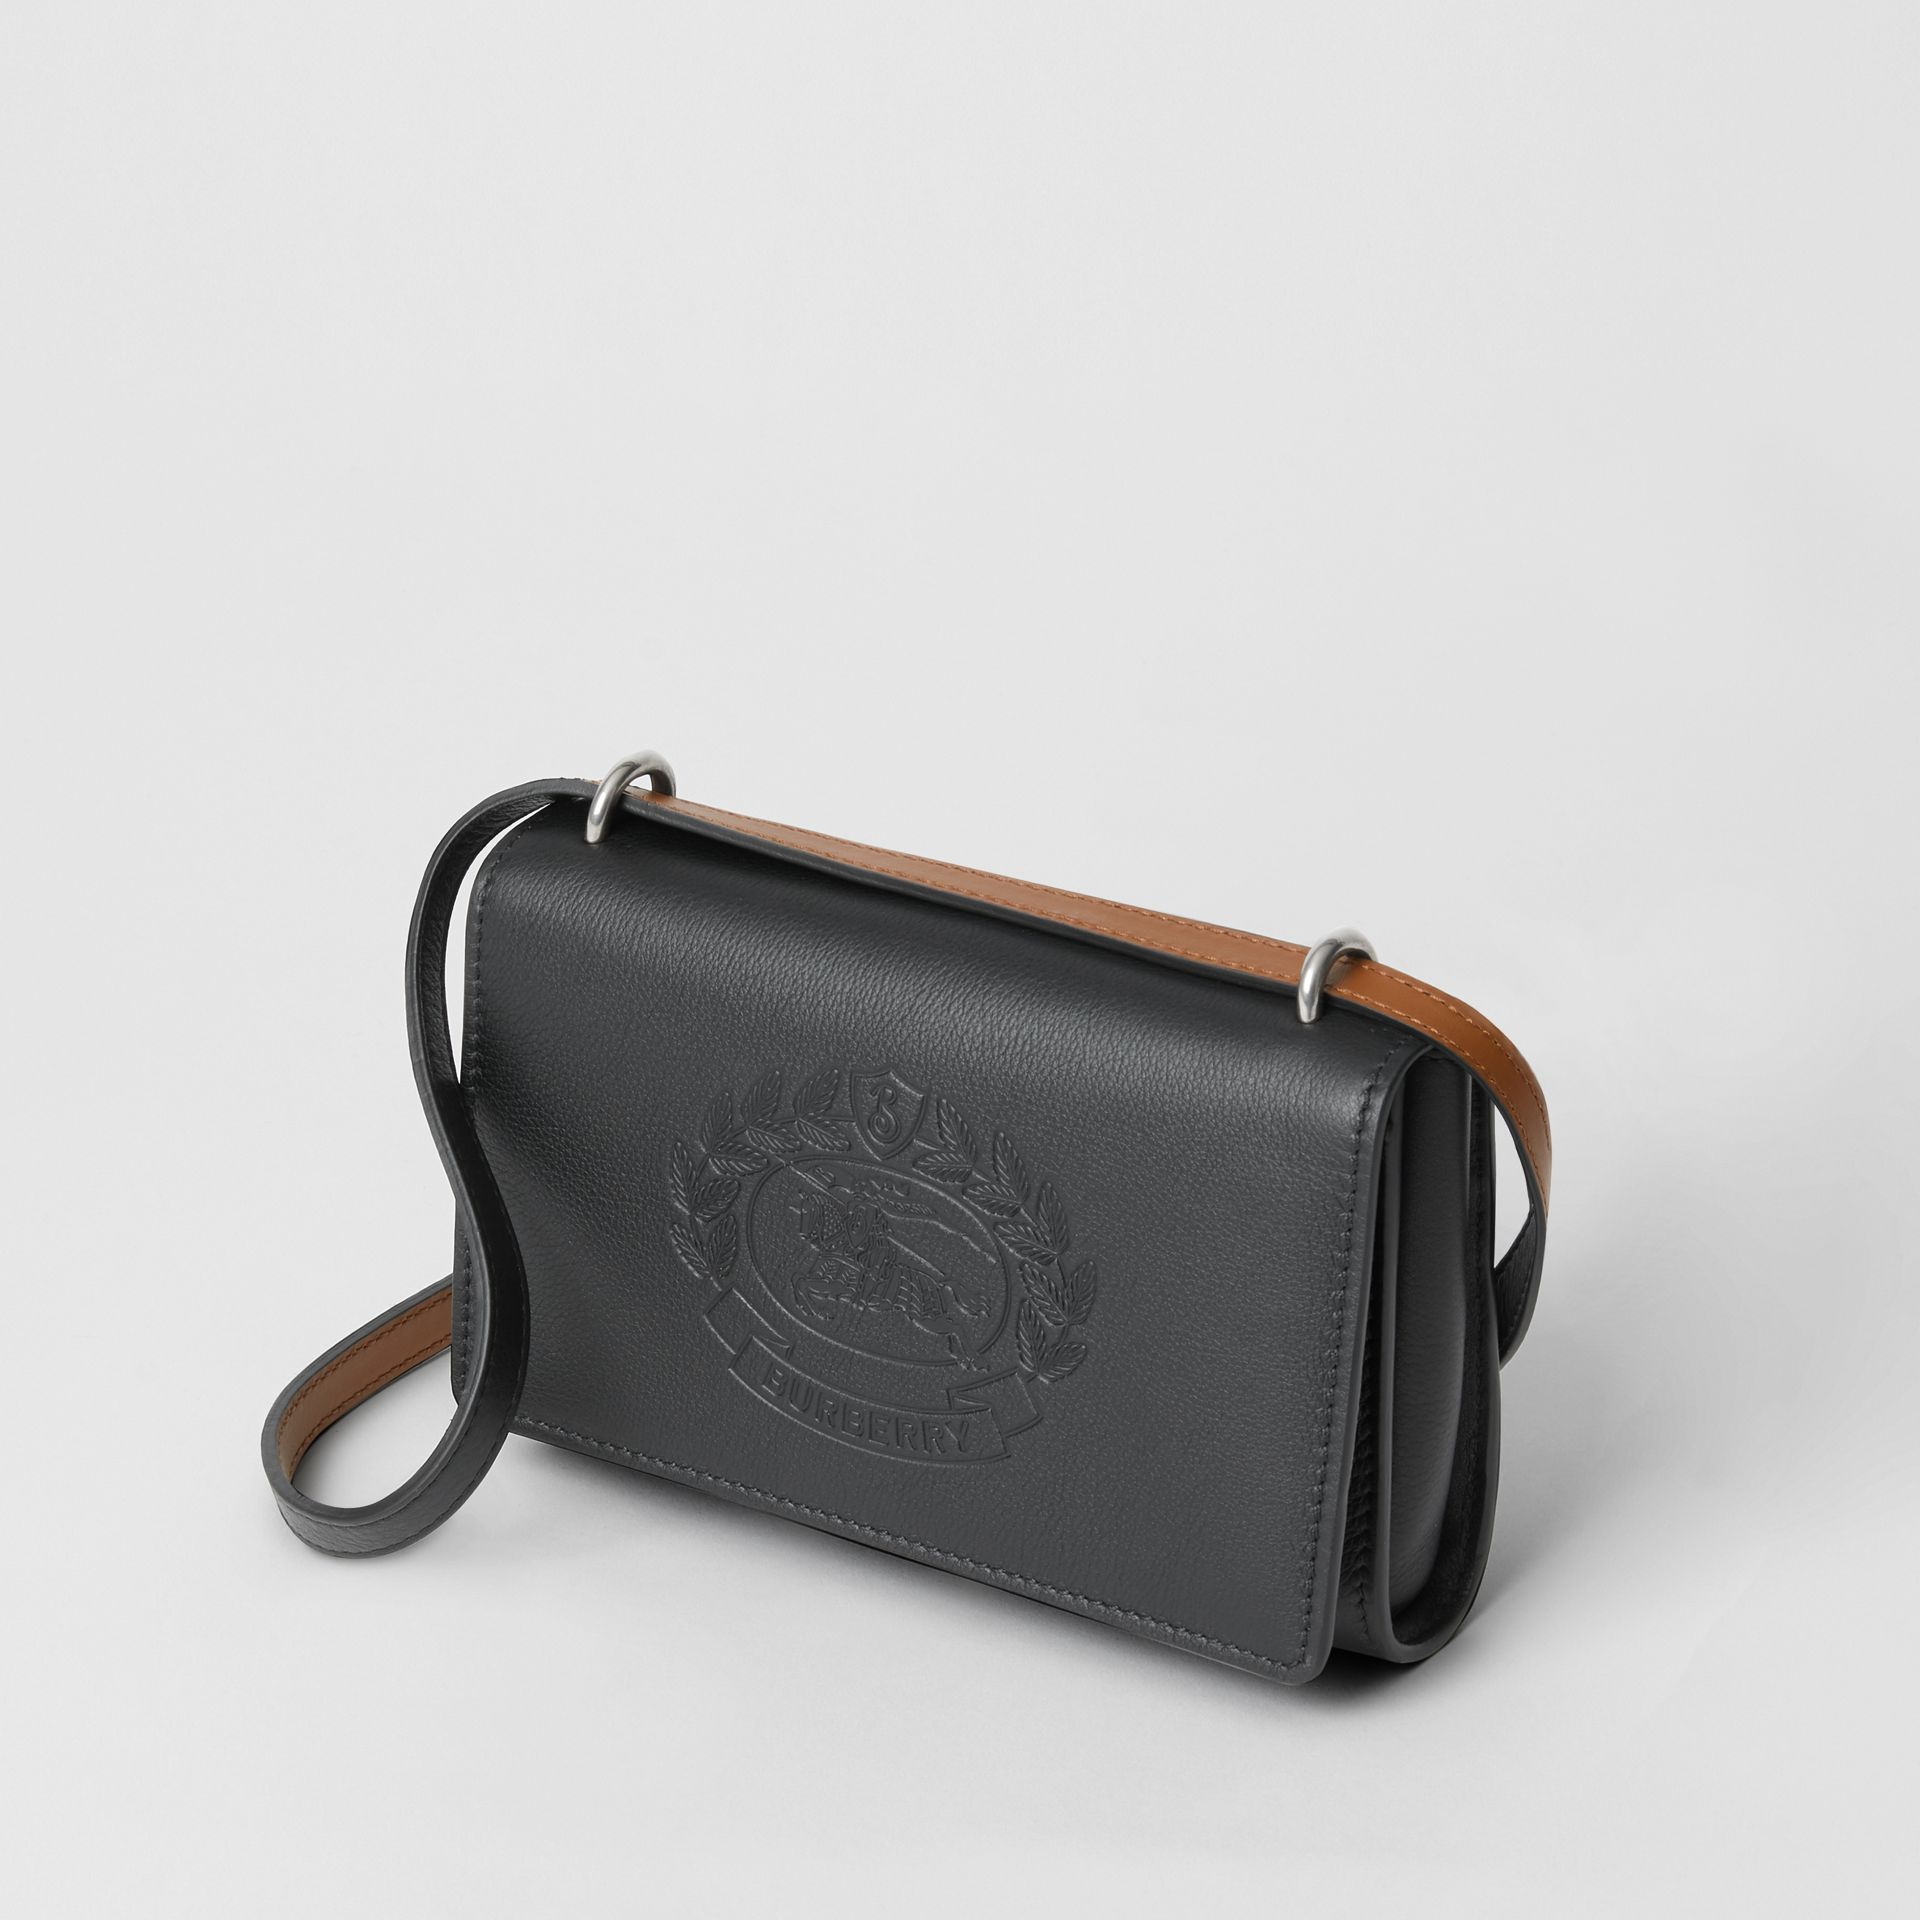 Embossed Crest Leather Wallet with Detachable Strap in Black - Women | Burberry Australia - gallery image 4